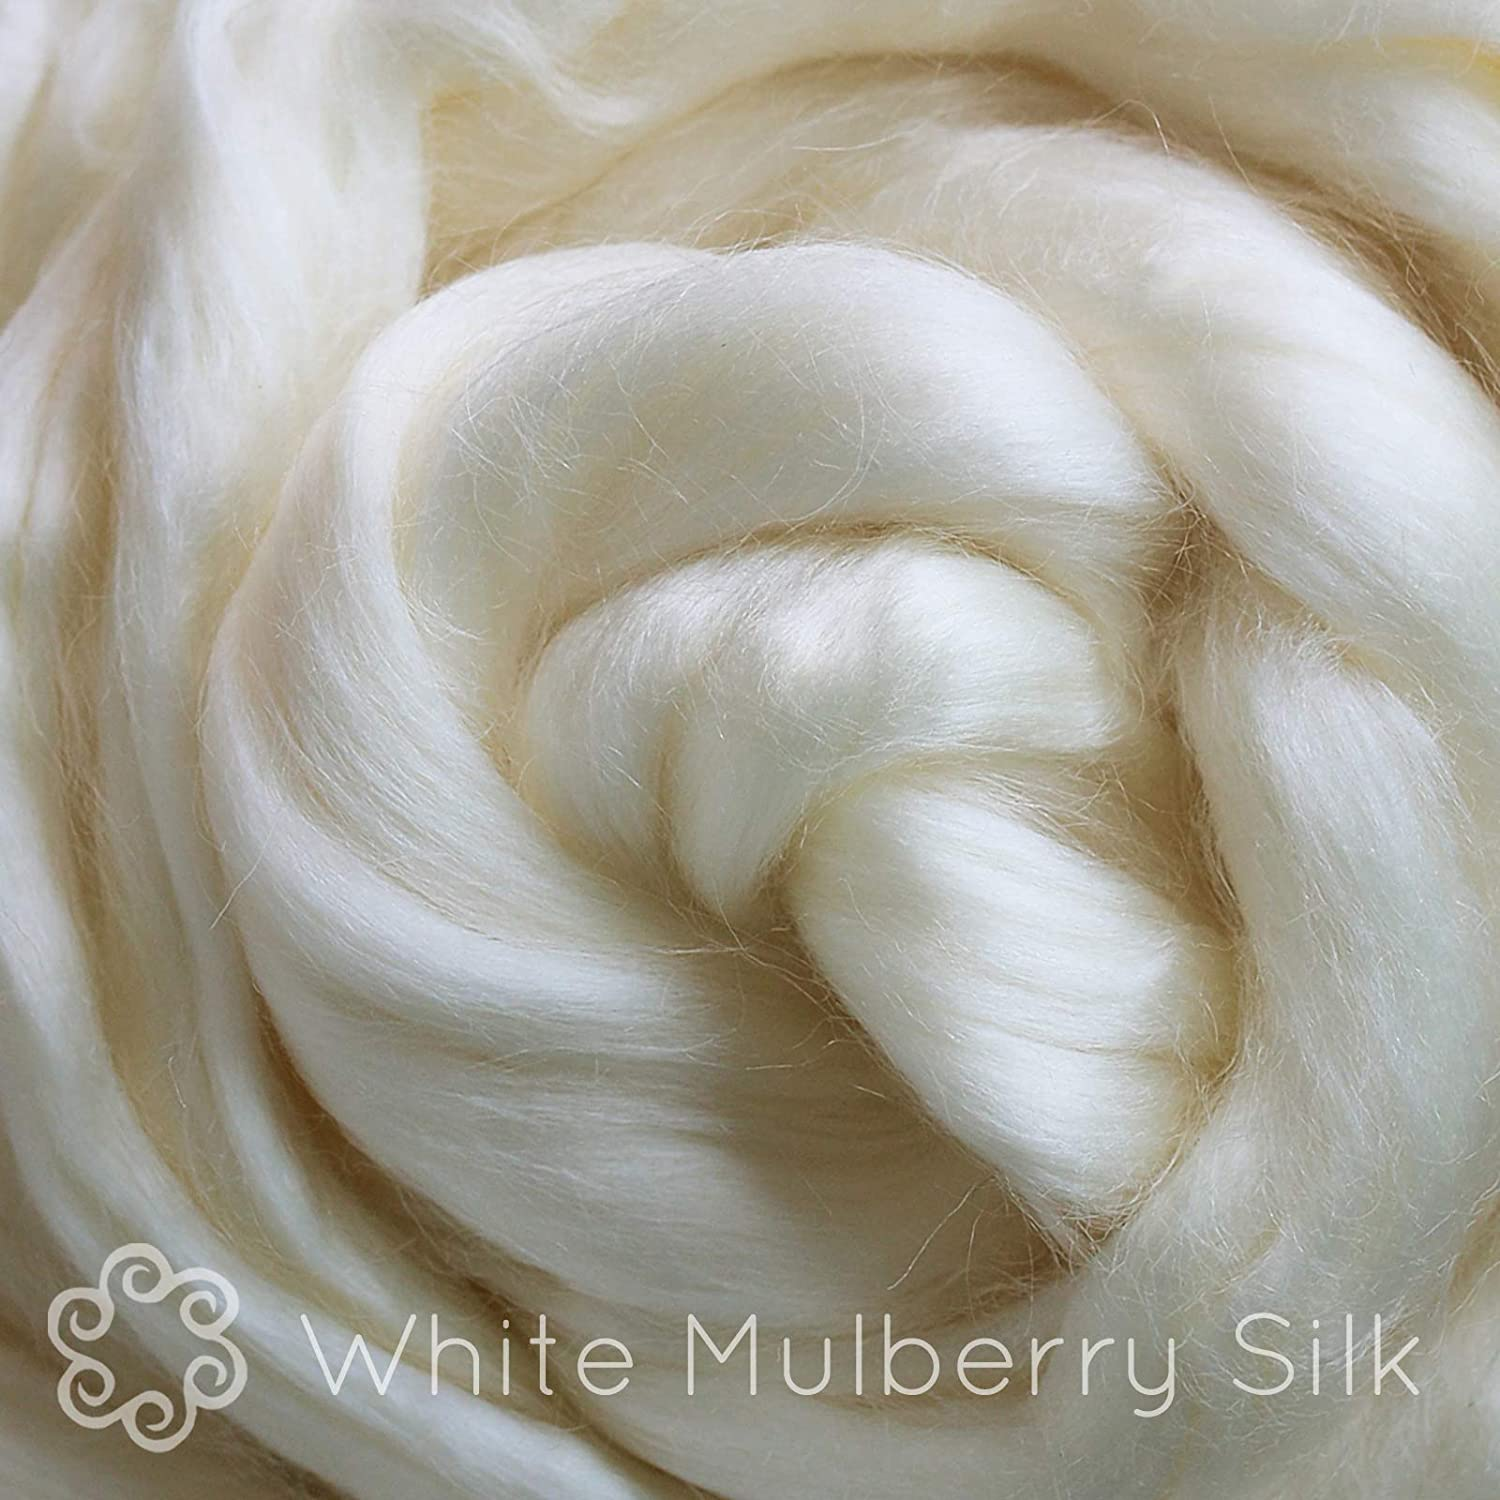 Spinning Dyeing Tussah Silk Fiber for Soap Making and Paper Making Blending Premium Grade Natural White Combed Top Roving. Felting